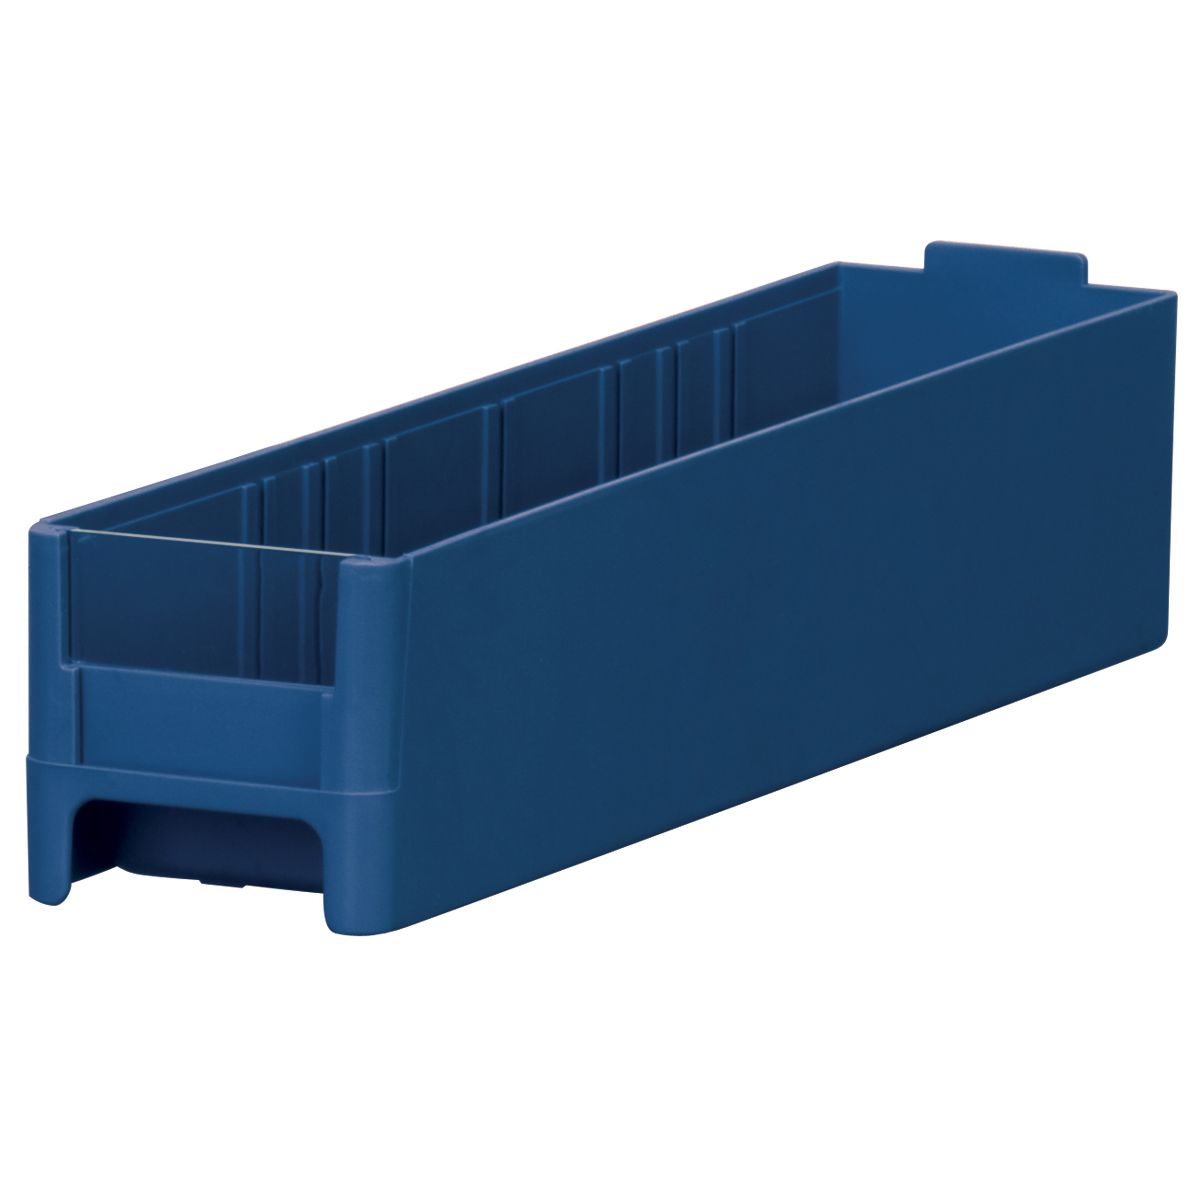 19-Series Cabinet Drawer 2-3/16 x 2-1/16 x 10-9/16, Blue.  This item sold in carton quantities of 56.